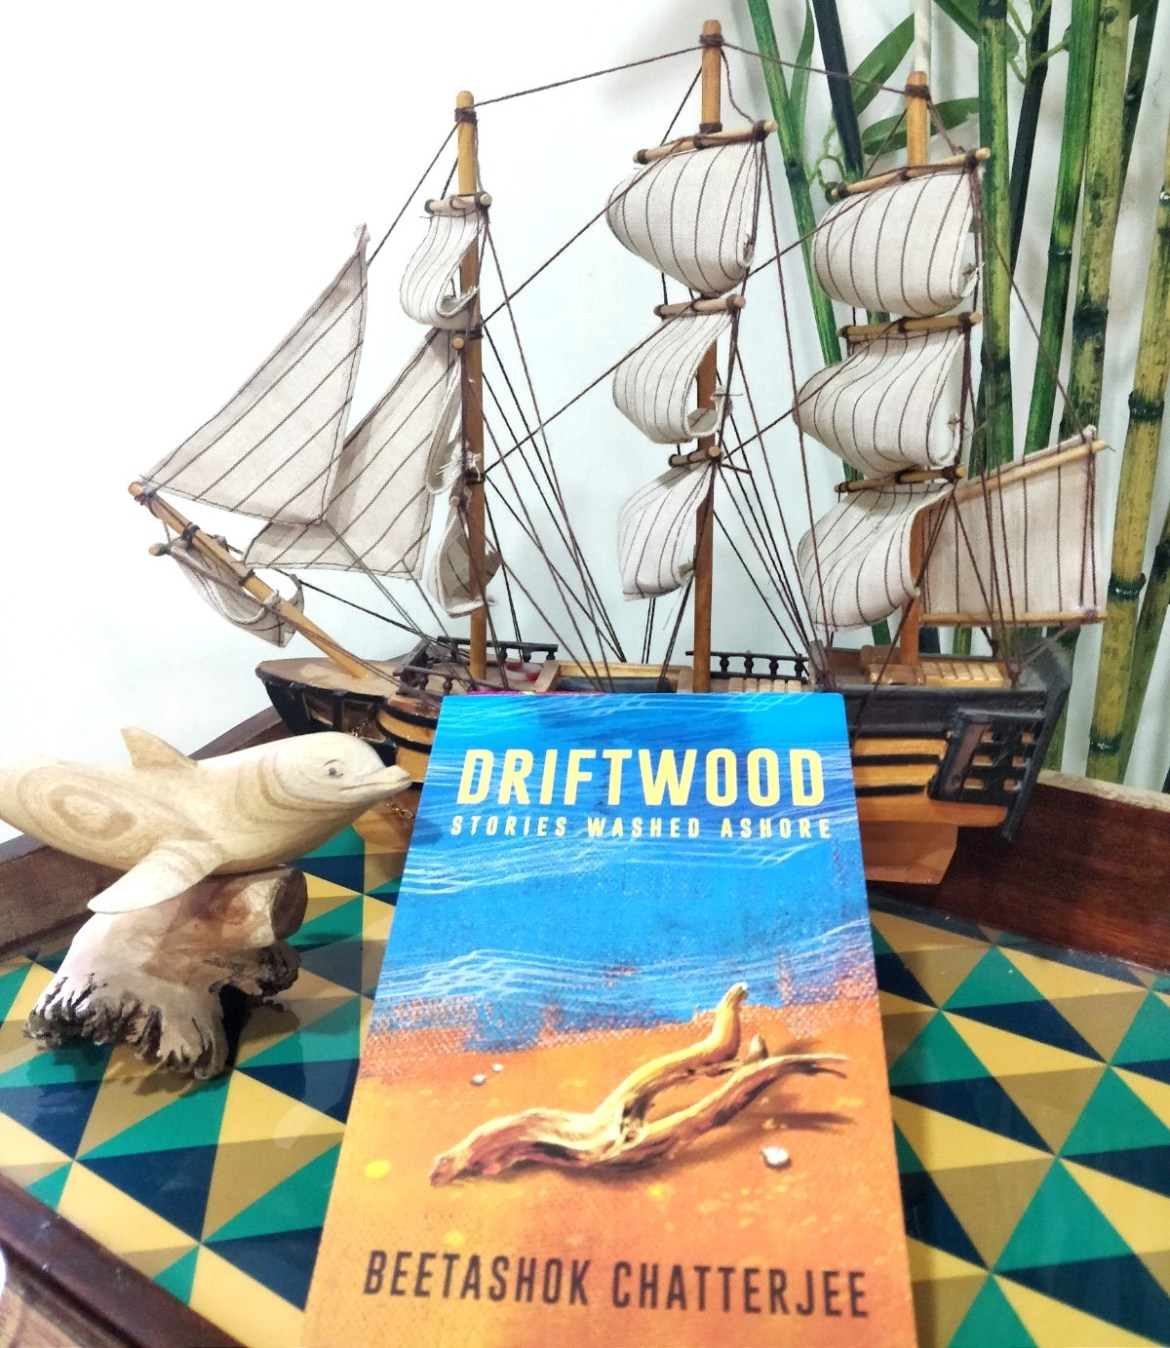 Driftwood – Stories Washed Ashore